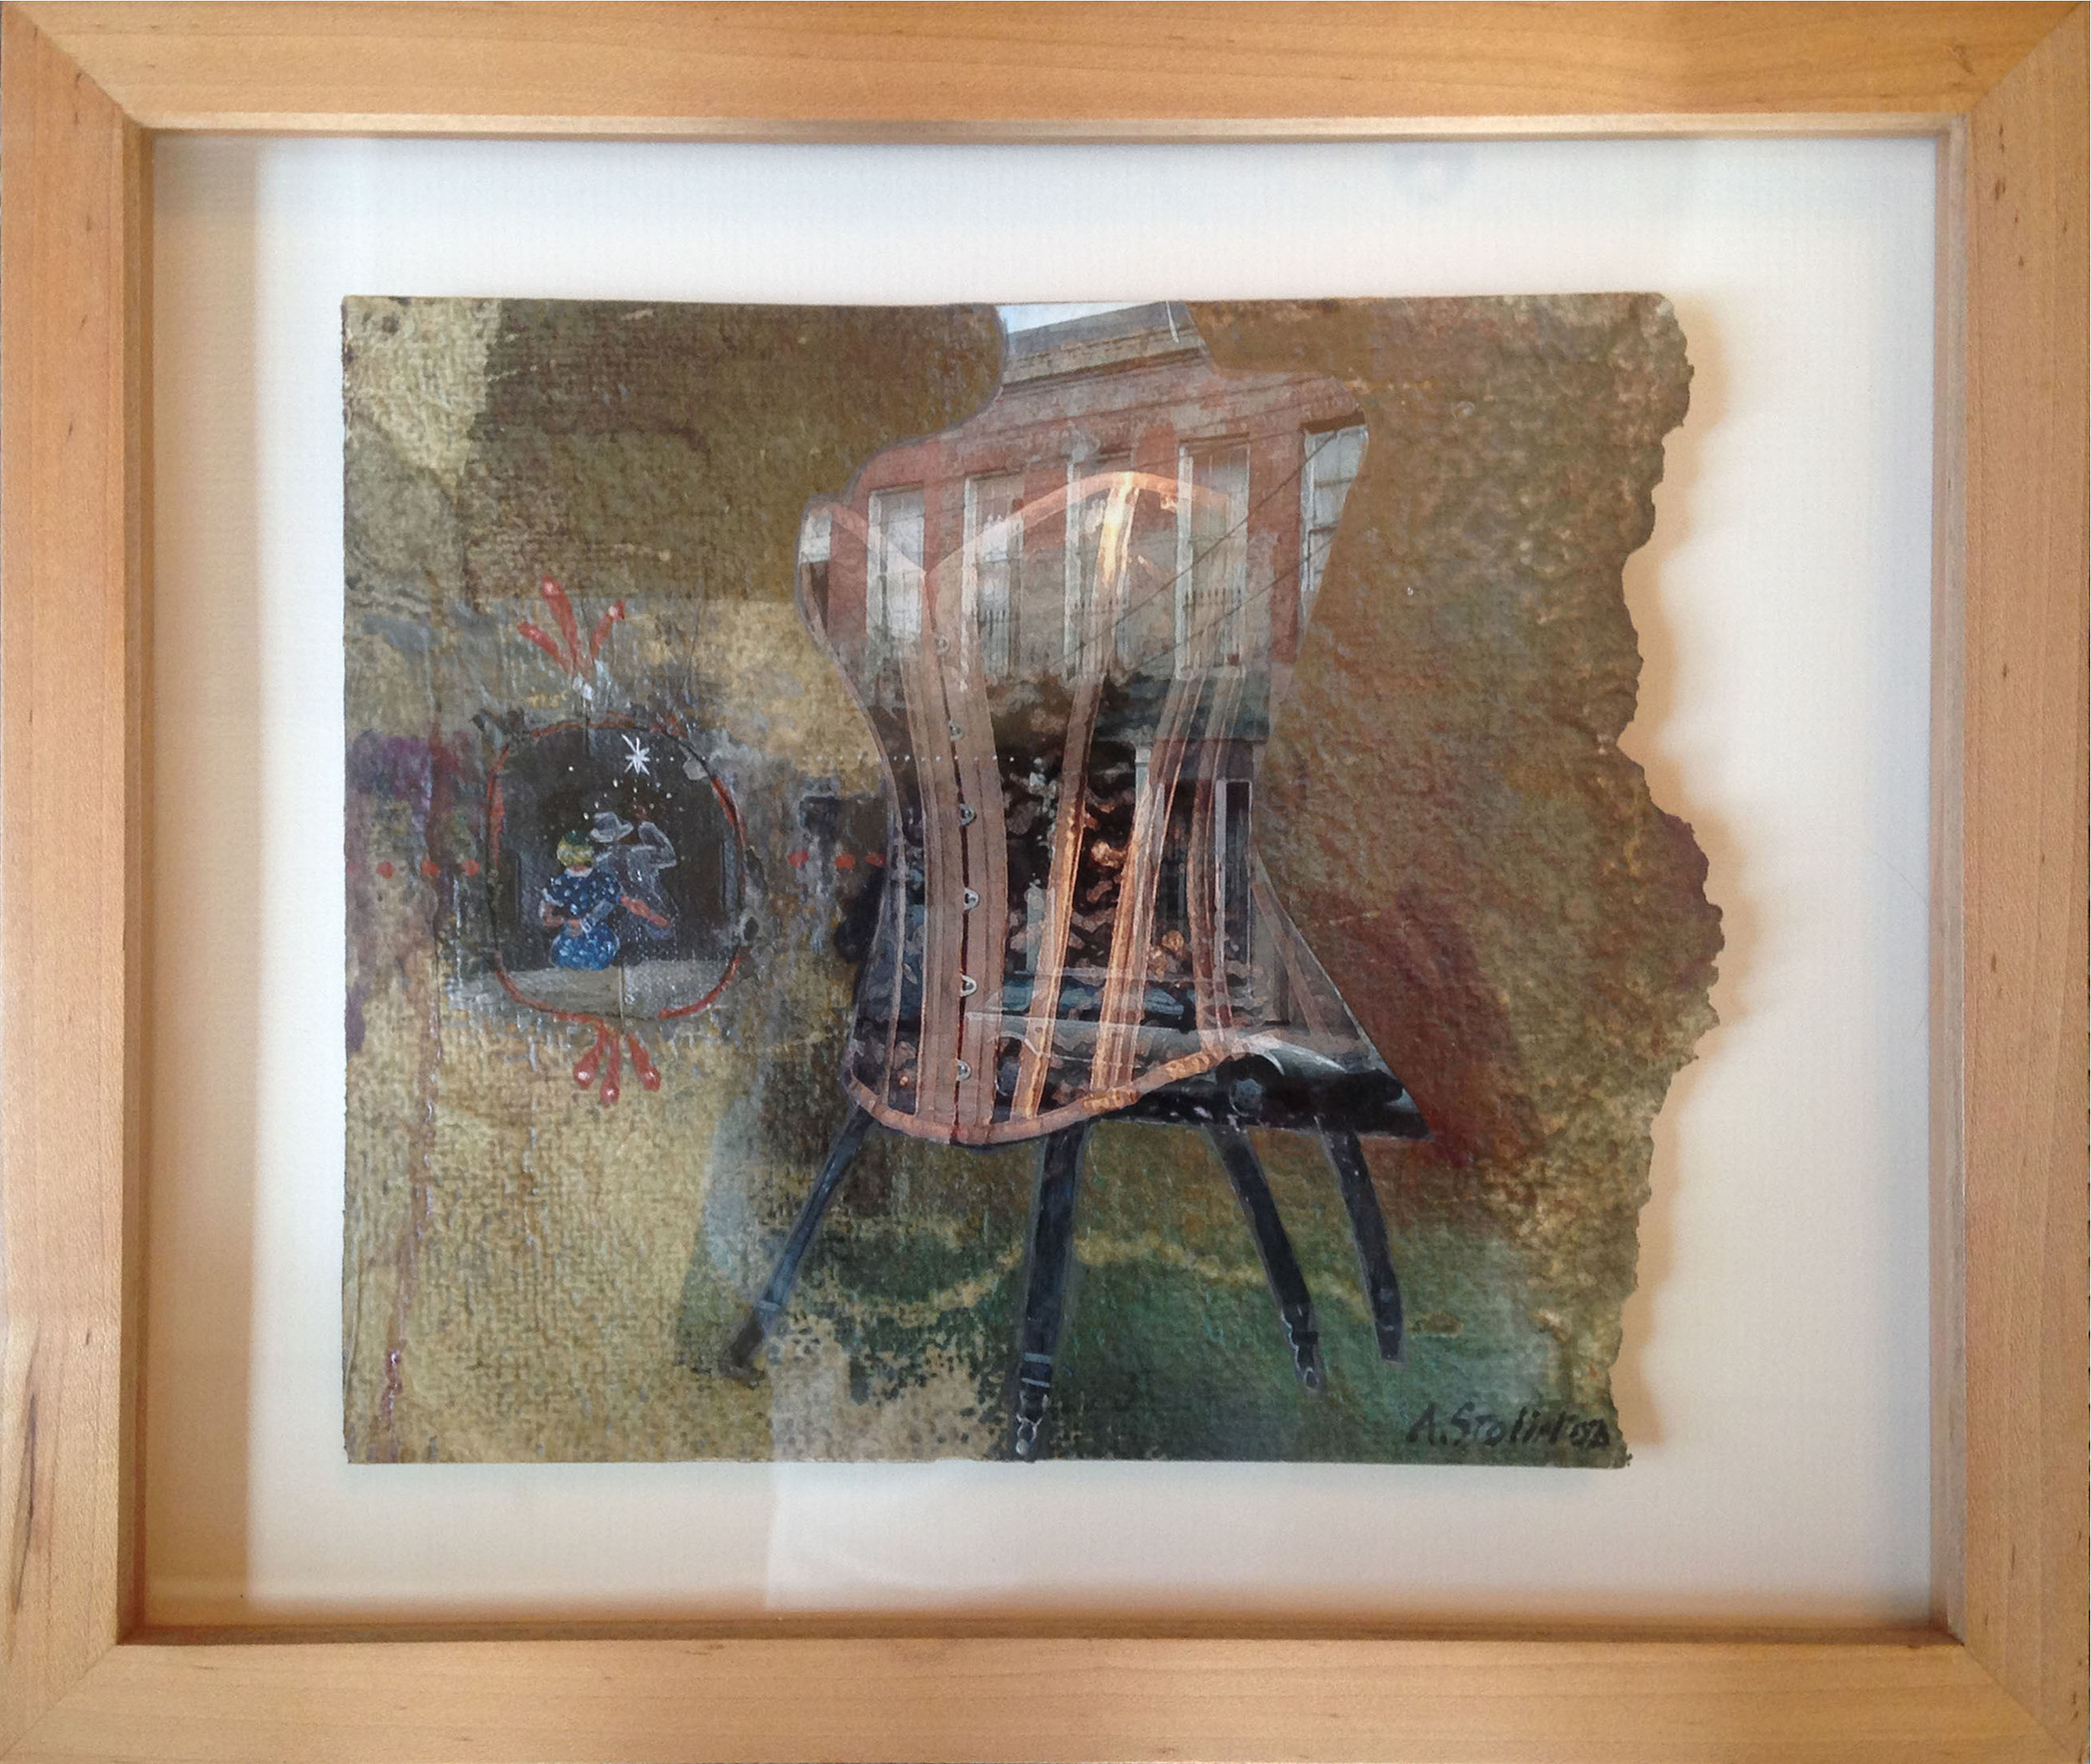 """Framed collage by A. Stolinoa, mixed media, 10.5""""X12.5"""""""